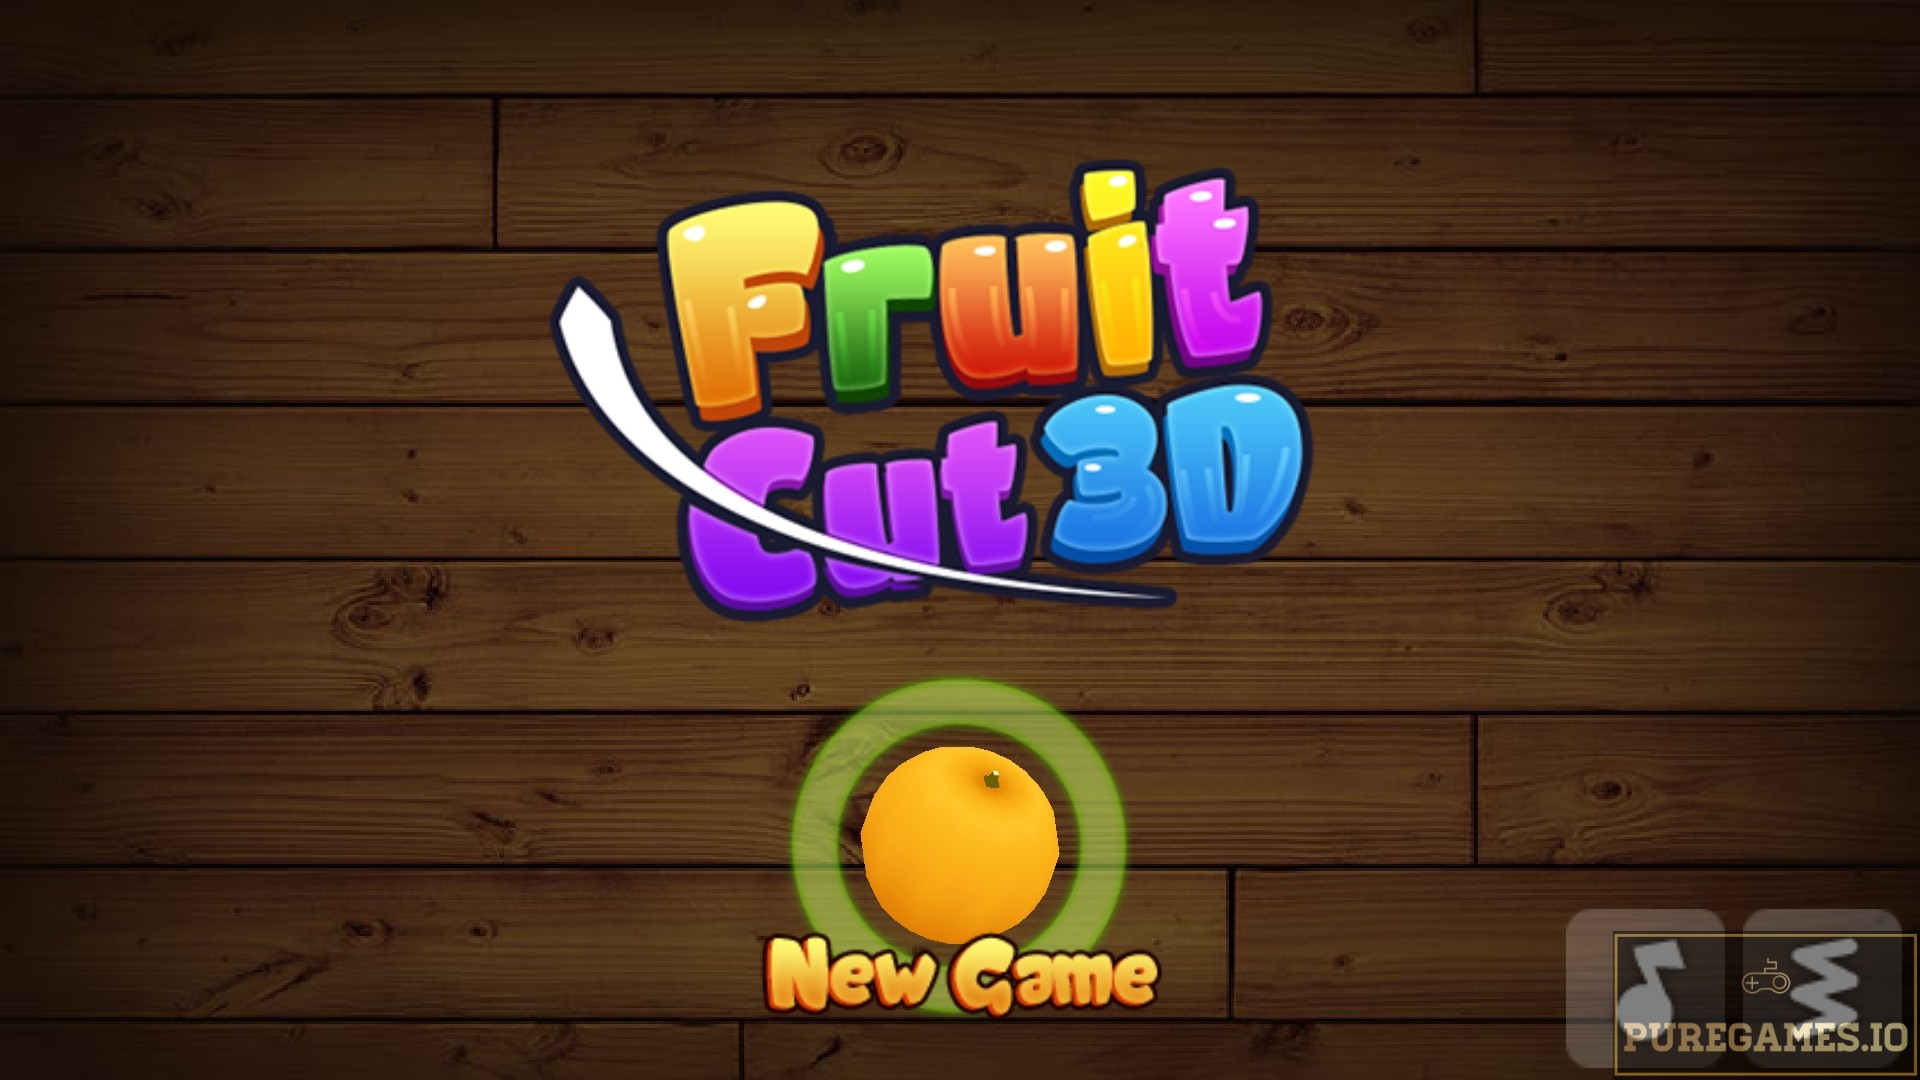 Download Fruit Cut 3D MOD APK - For Android/iOS 4